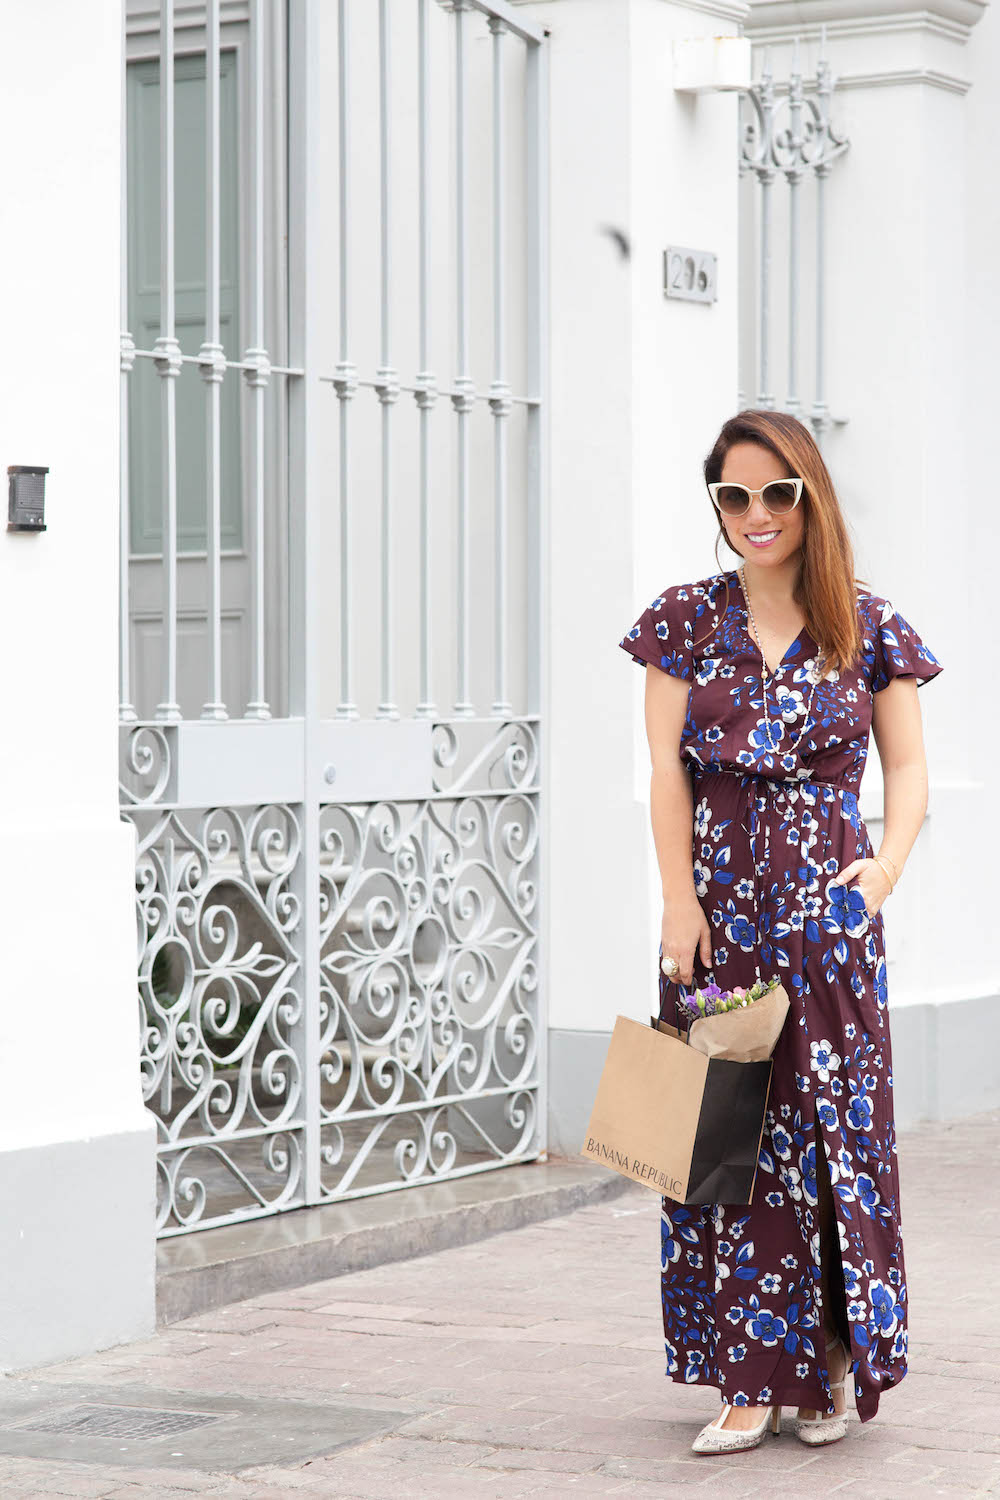 La vida de Serendipity - Banana Republic Maxi Floral Dress - Fendi Sunglasses -  1